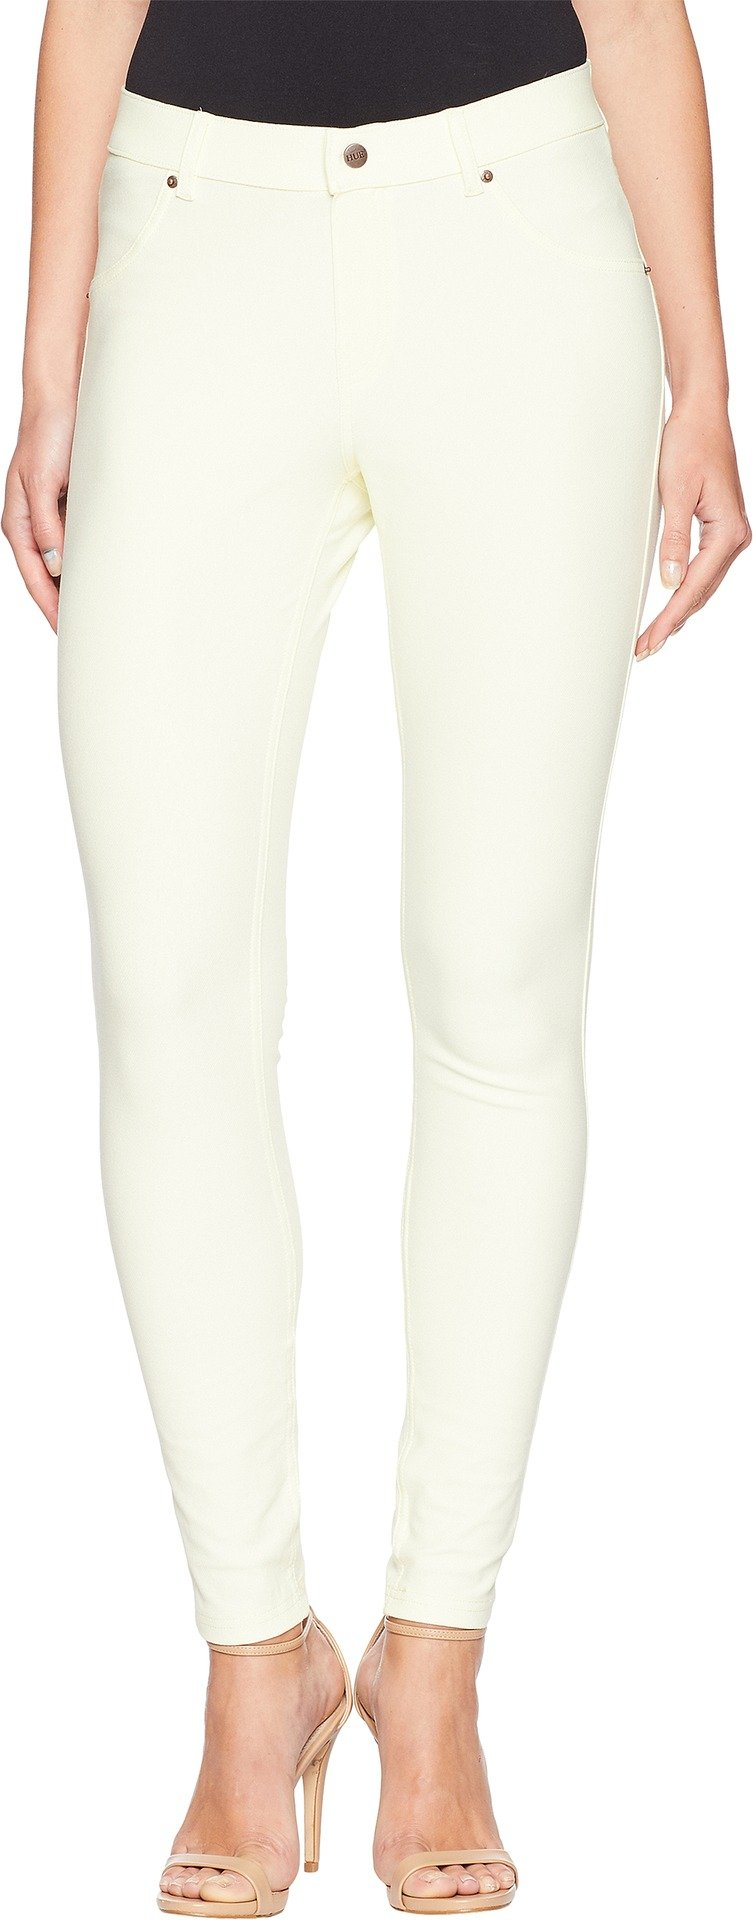 HUE Women's Essential Denim Leggings Lemon Ice Medium 29